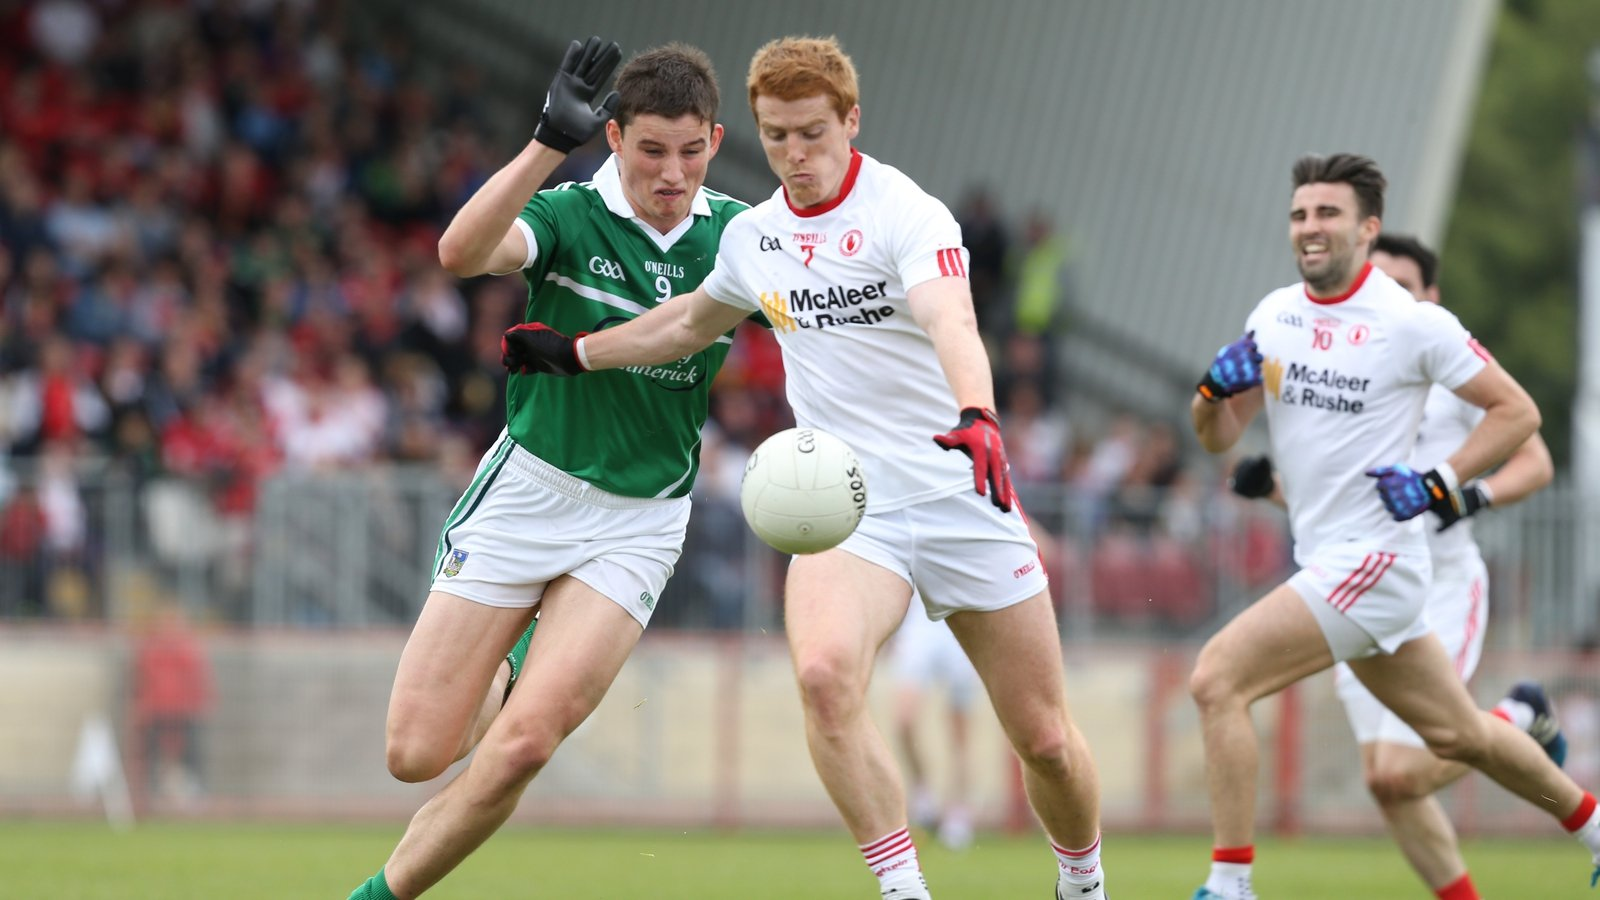 Image - Gearoid Hegarty attempts to tackle Tyrone's Peter Harte in the 2015 All-Ireland football qualifier